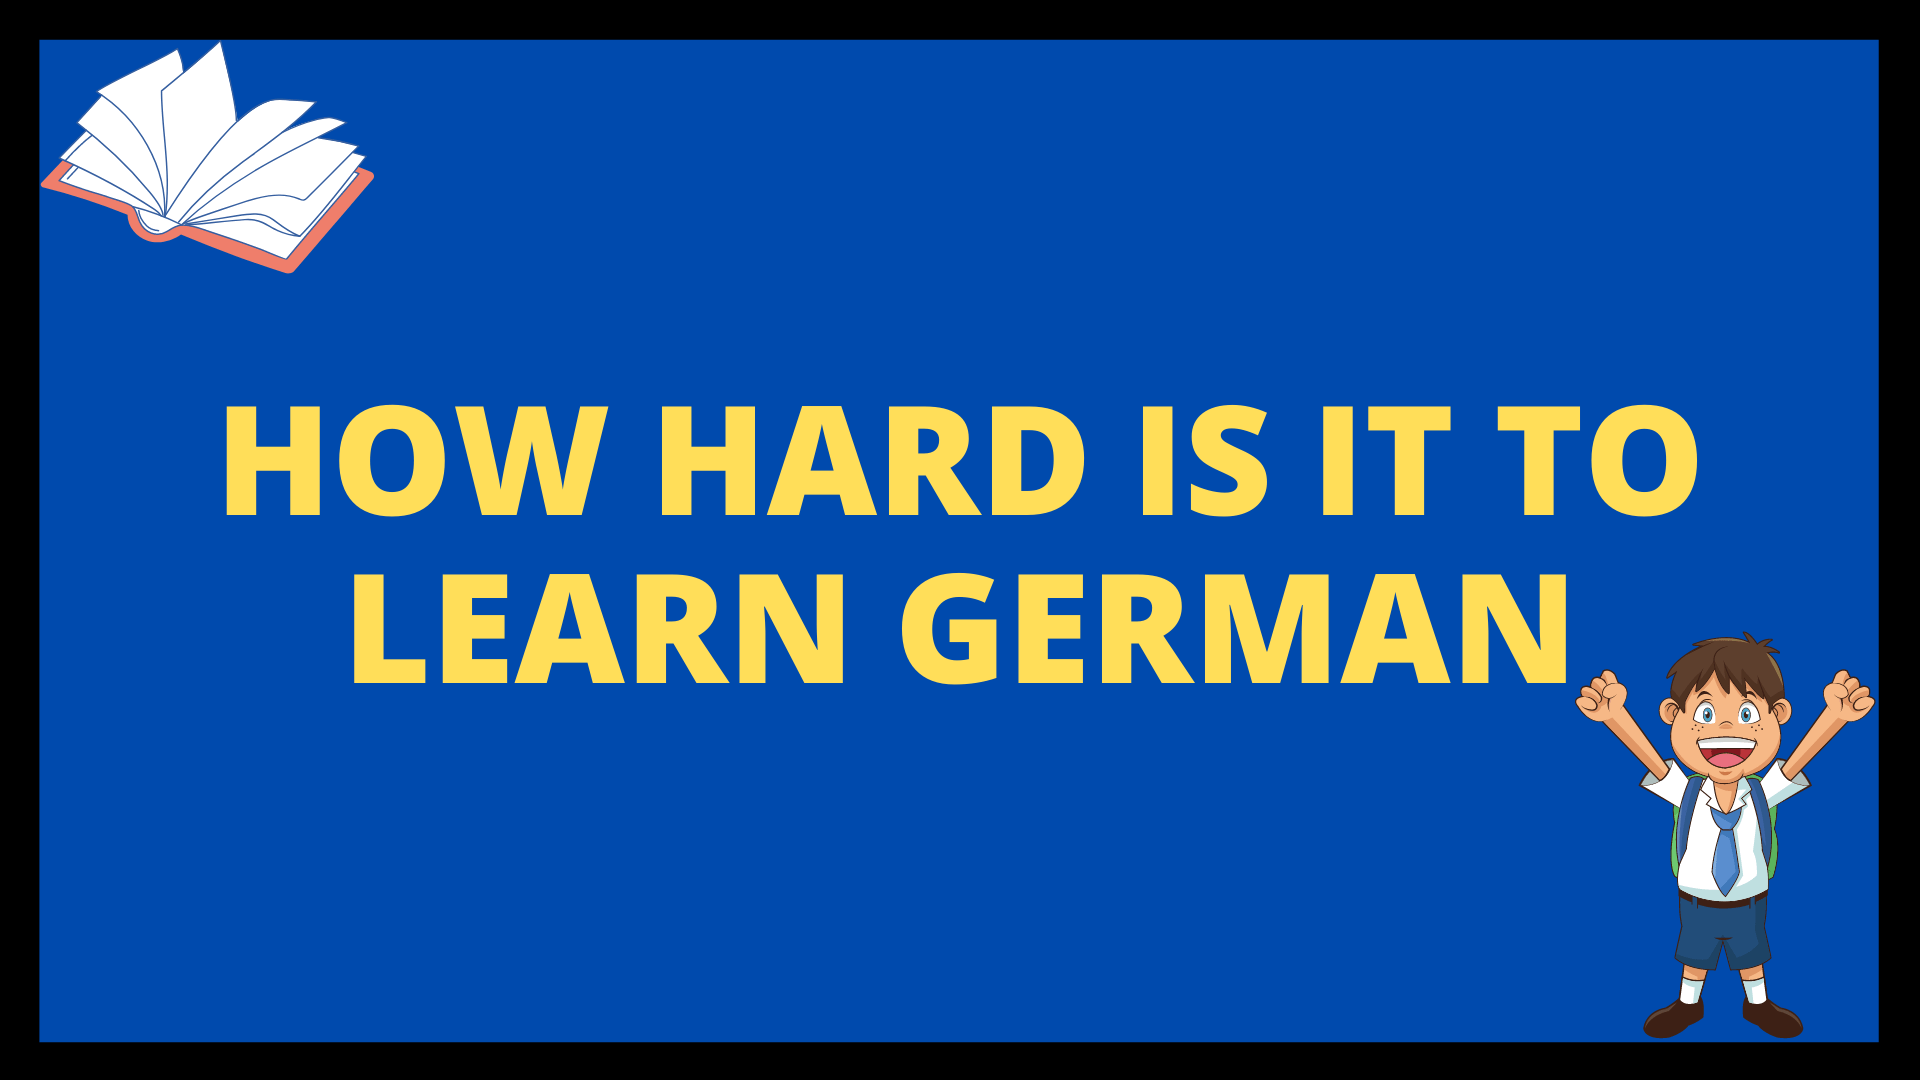 How Hard is it to Learn German